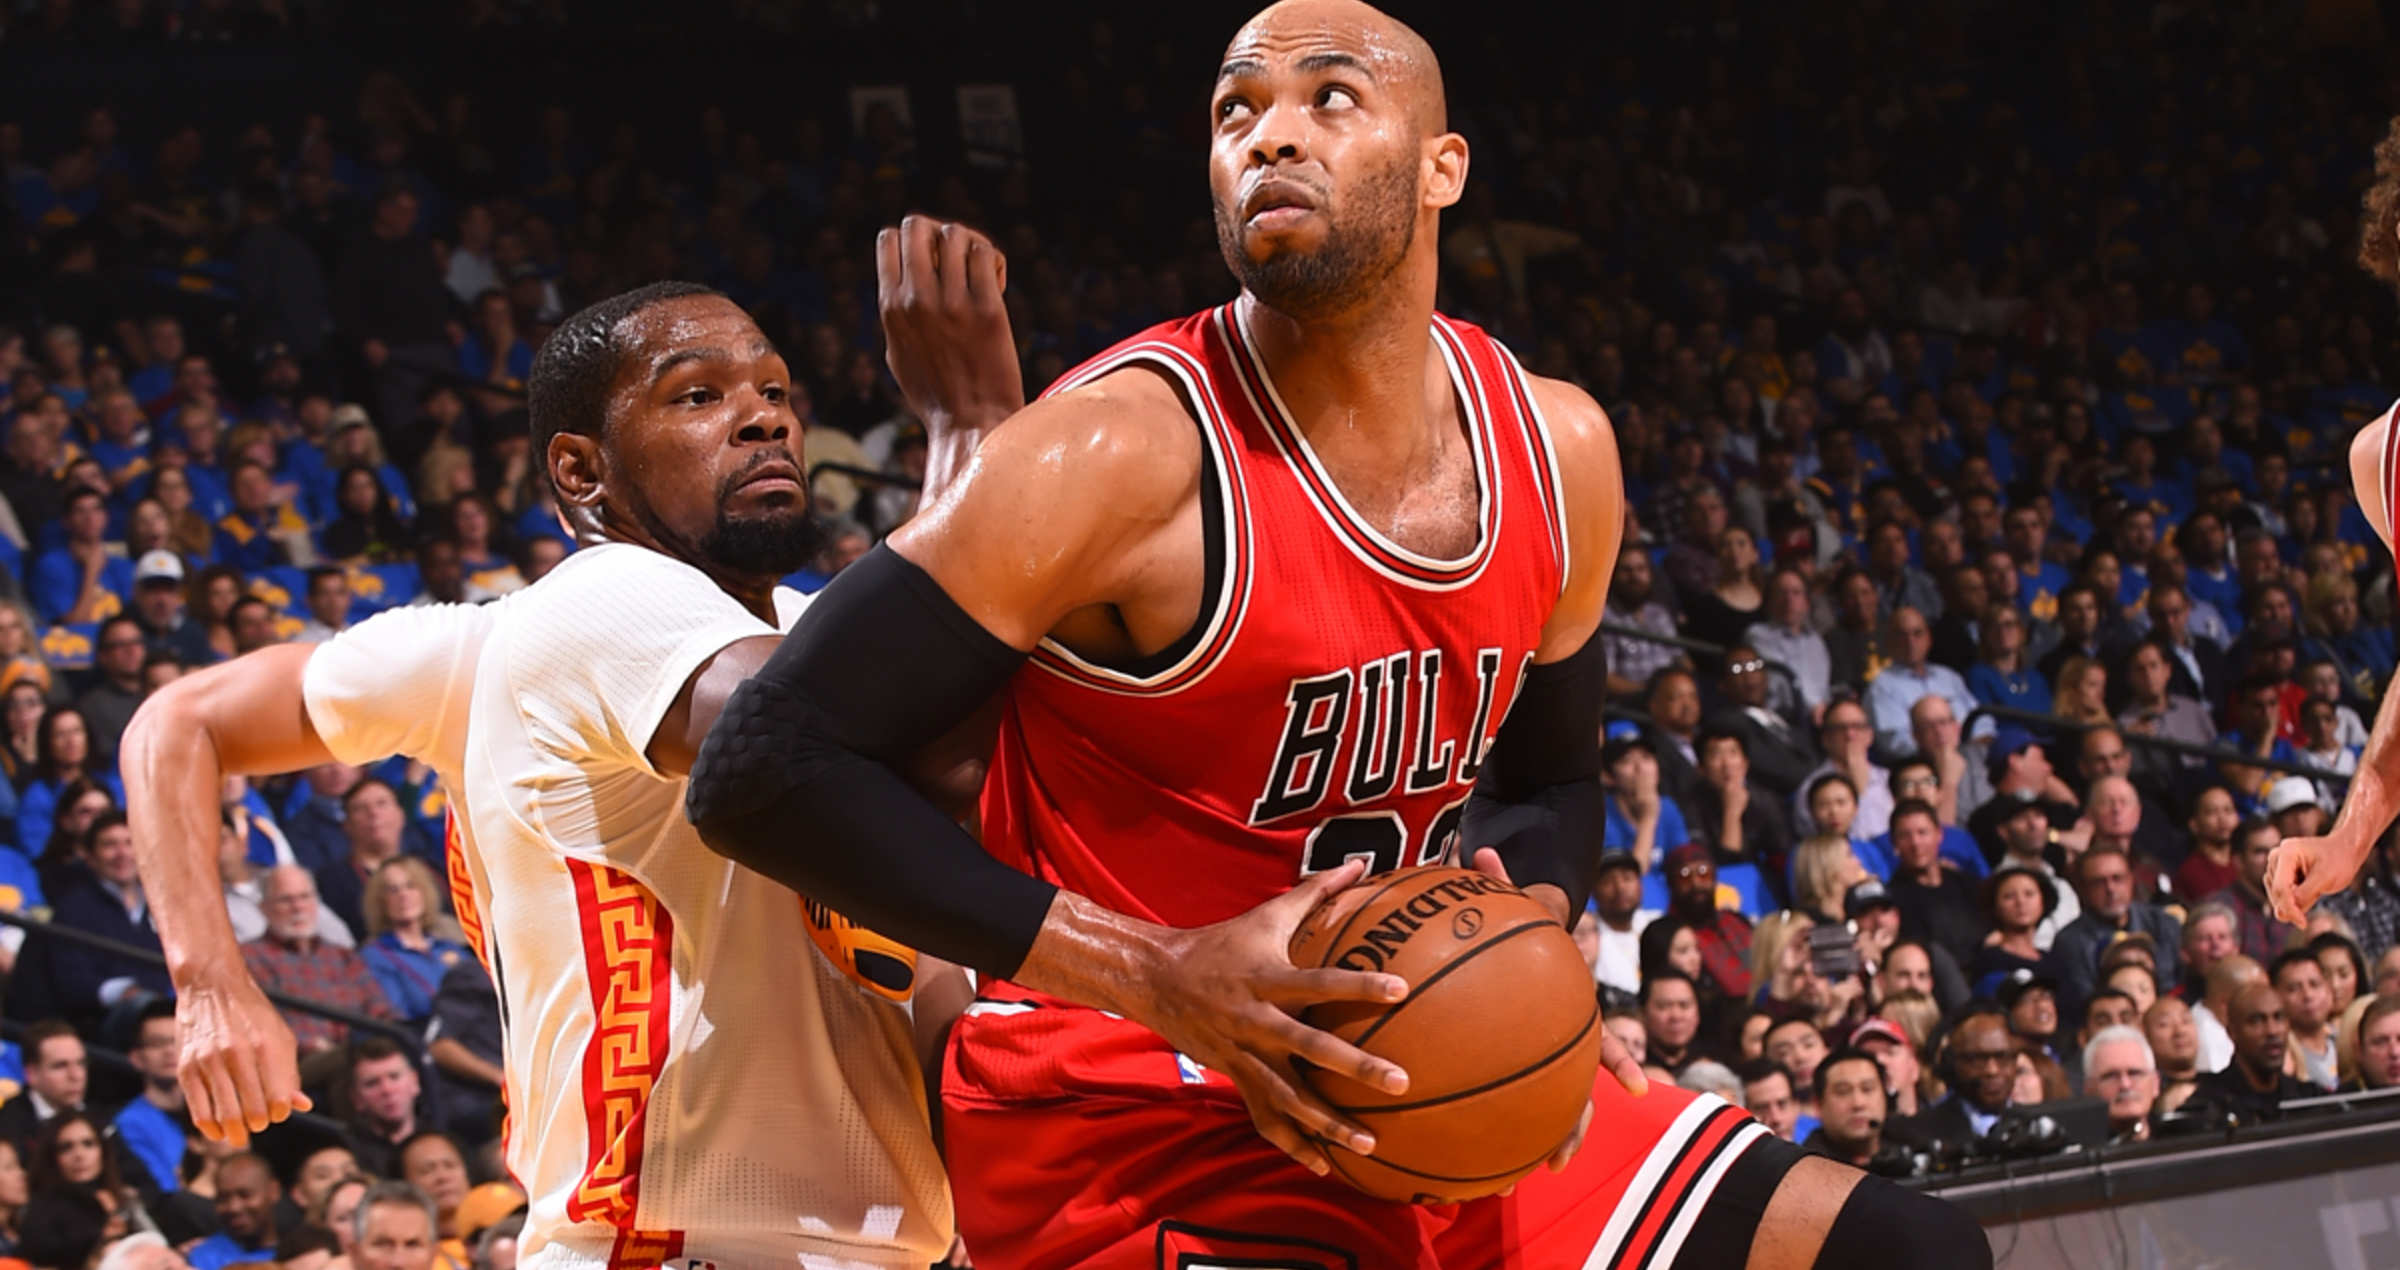 Taj Gibson vs. Golden State